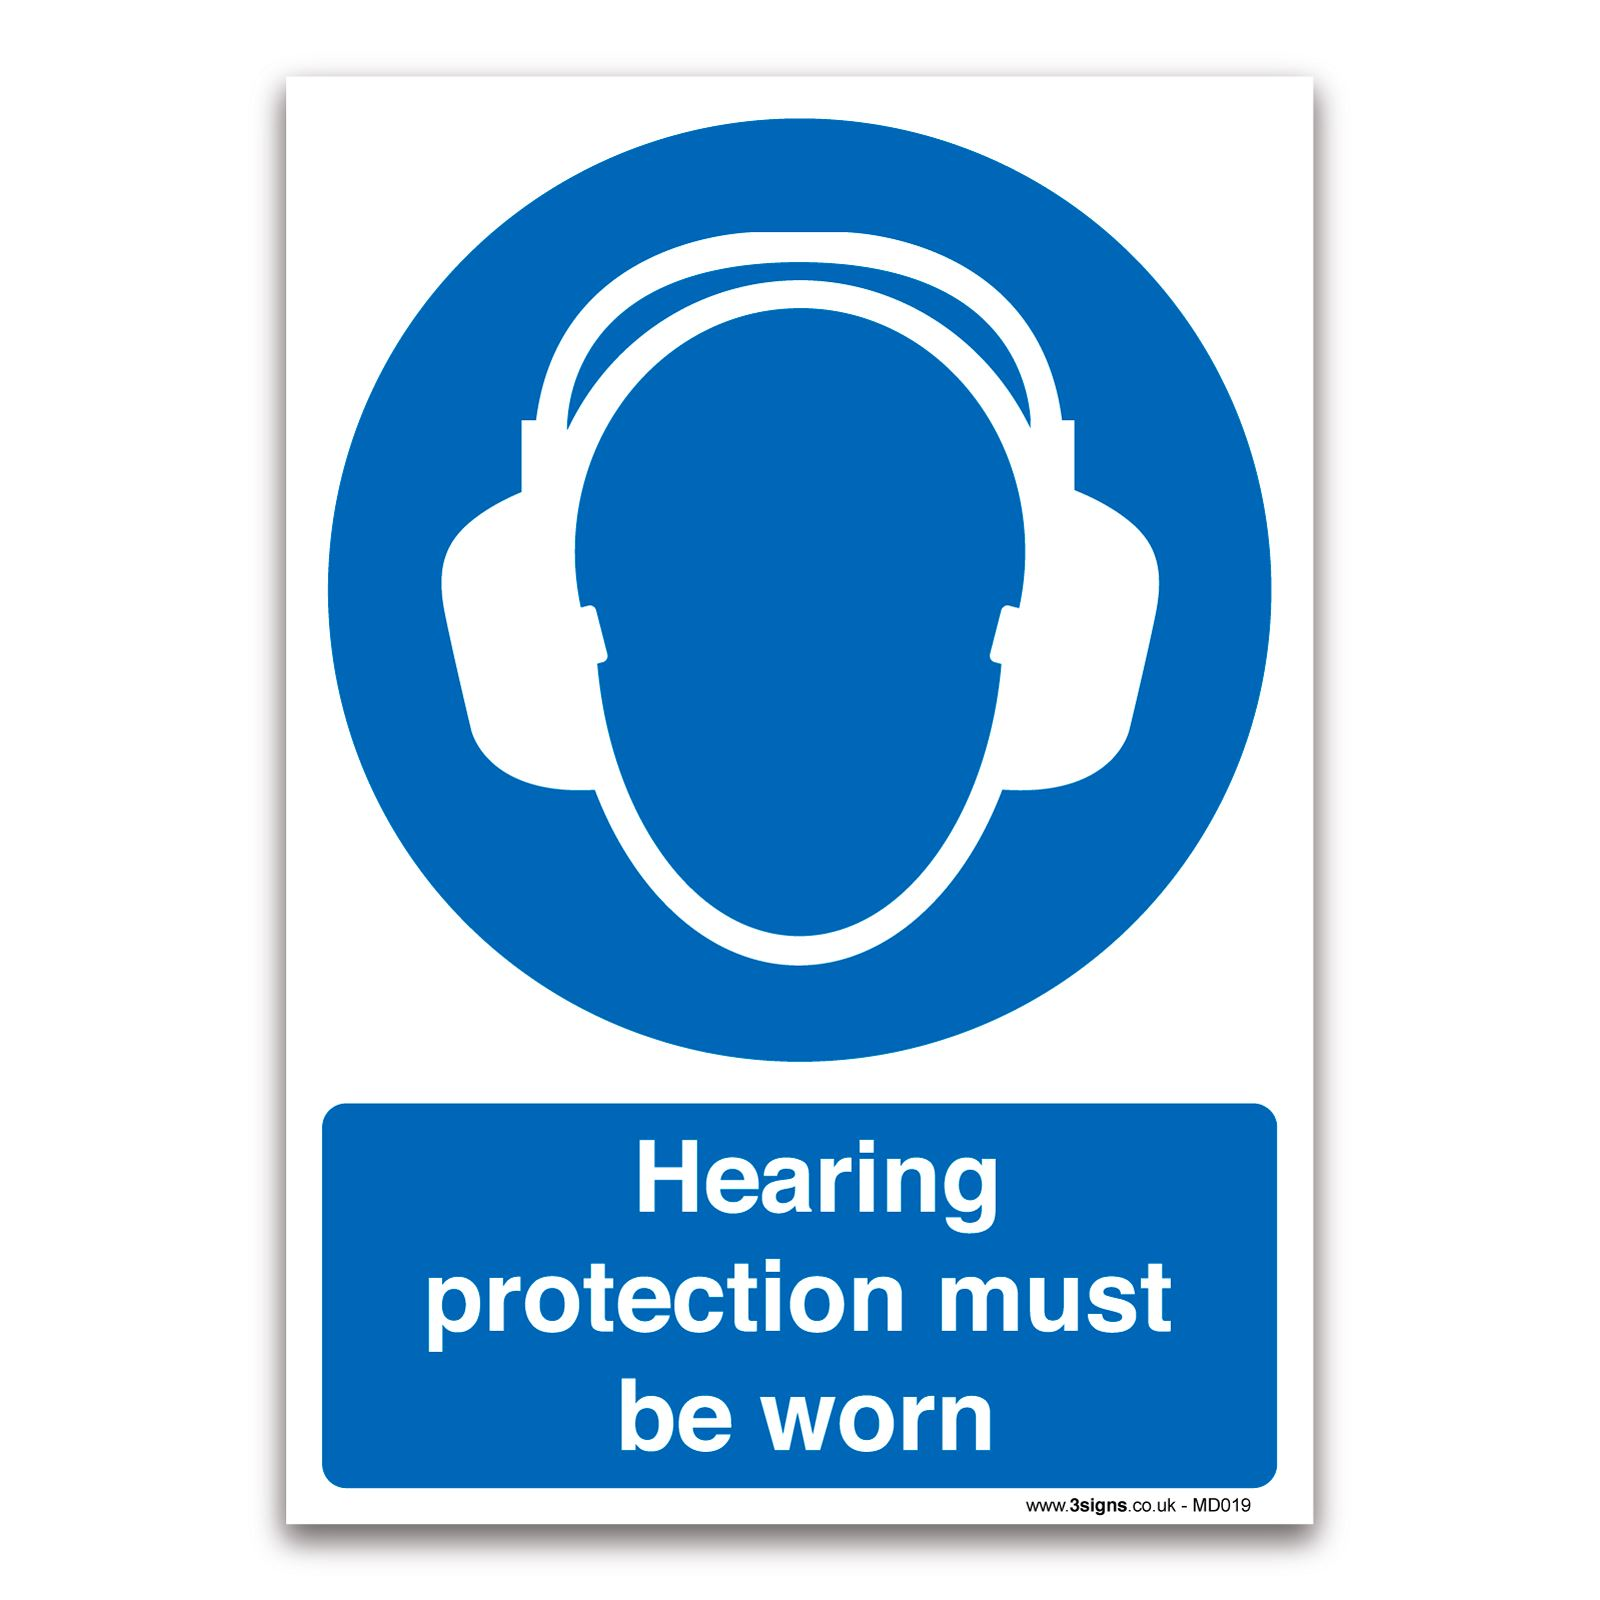 Hearing Protection Must Be Worn 1mm Rigid Plastic Mandatory Safety